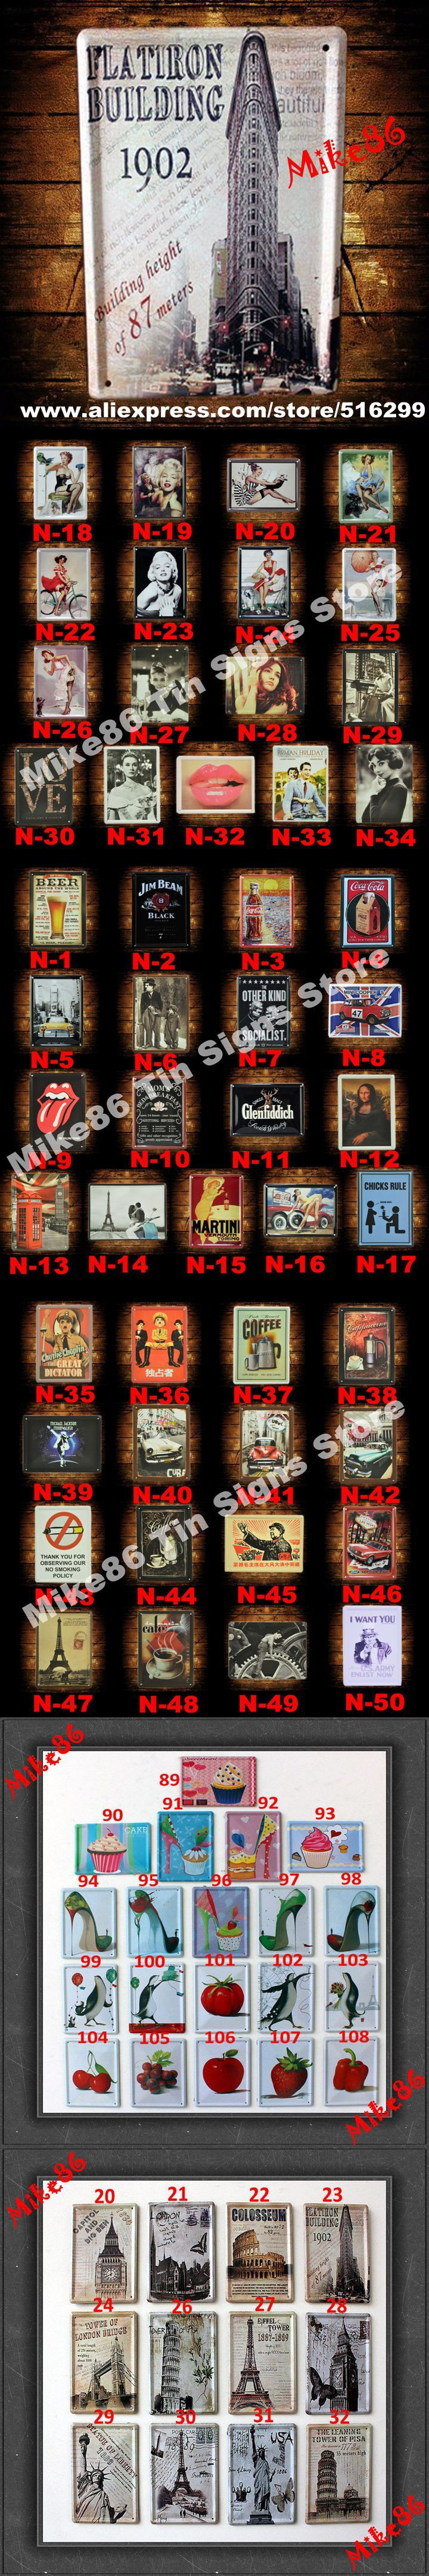 [ Mike86 ] Vintage Metal Plaque Small Cafe PUB Home Retro Decor F-65 Metal paintings 11*8 CM $2.99